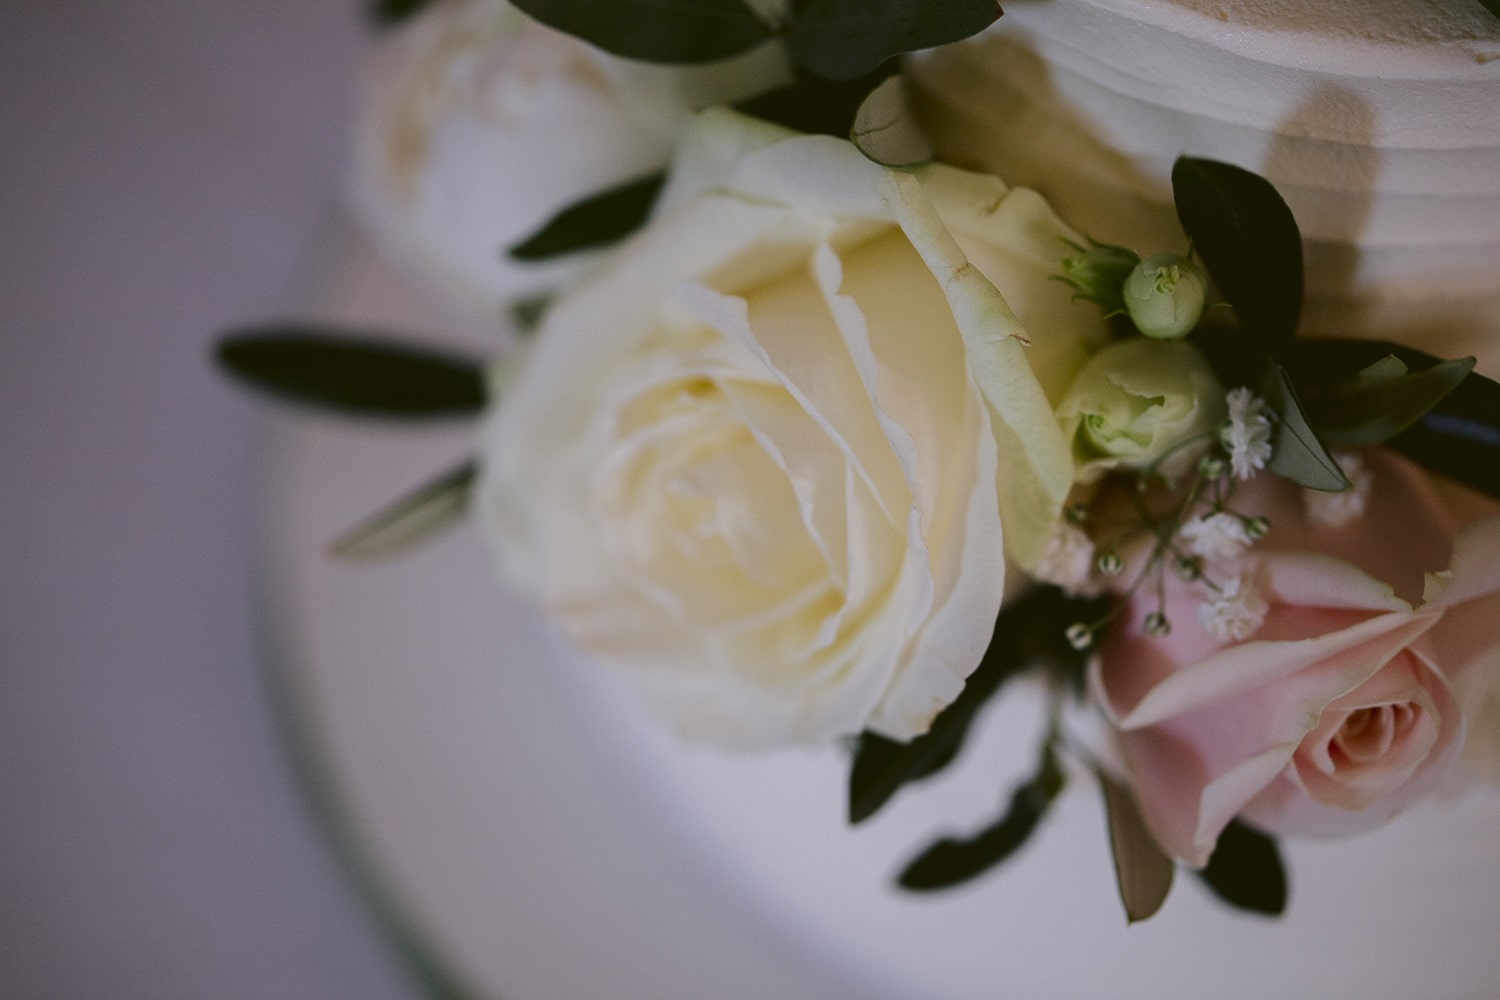 Photograph of a Flower on Wedding Cake